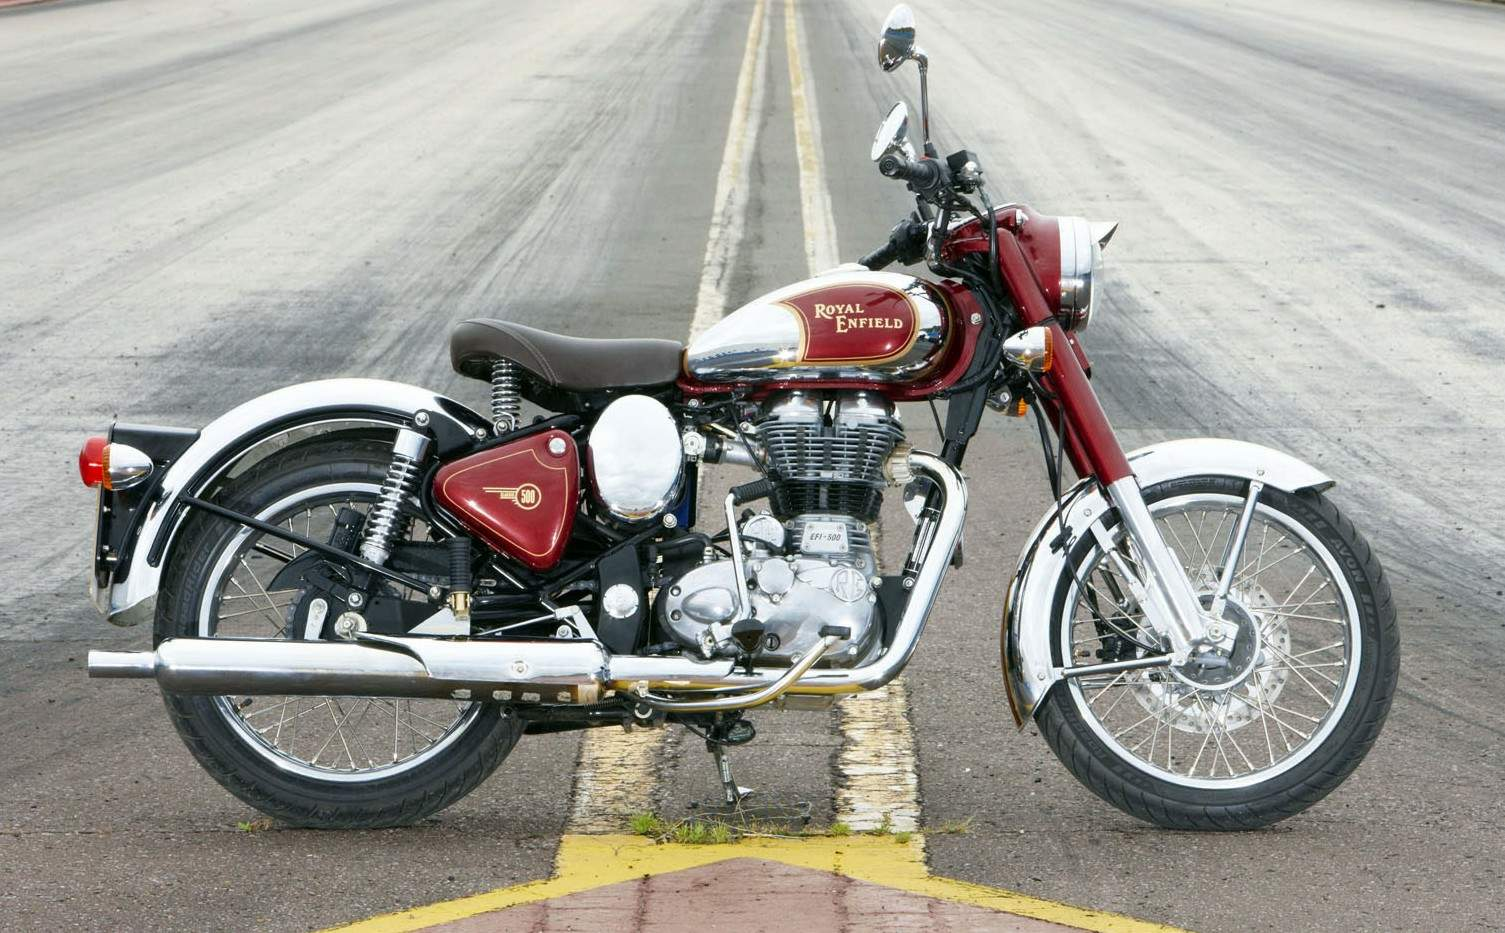 Royal Enfield Bullet 350 Classic 2008 images #123484